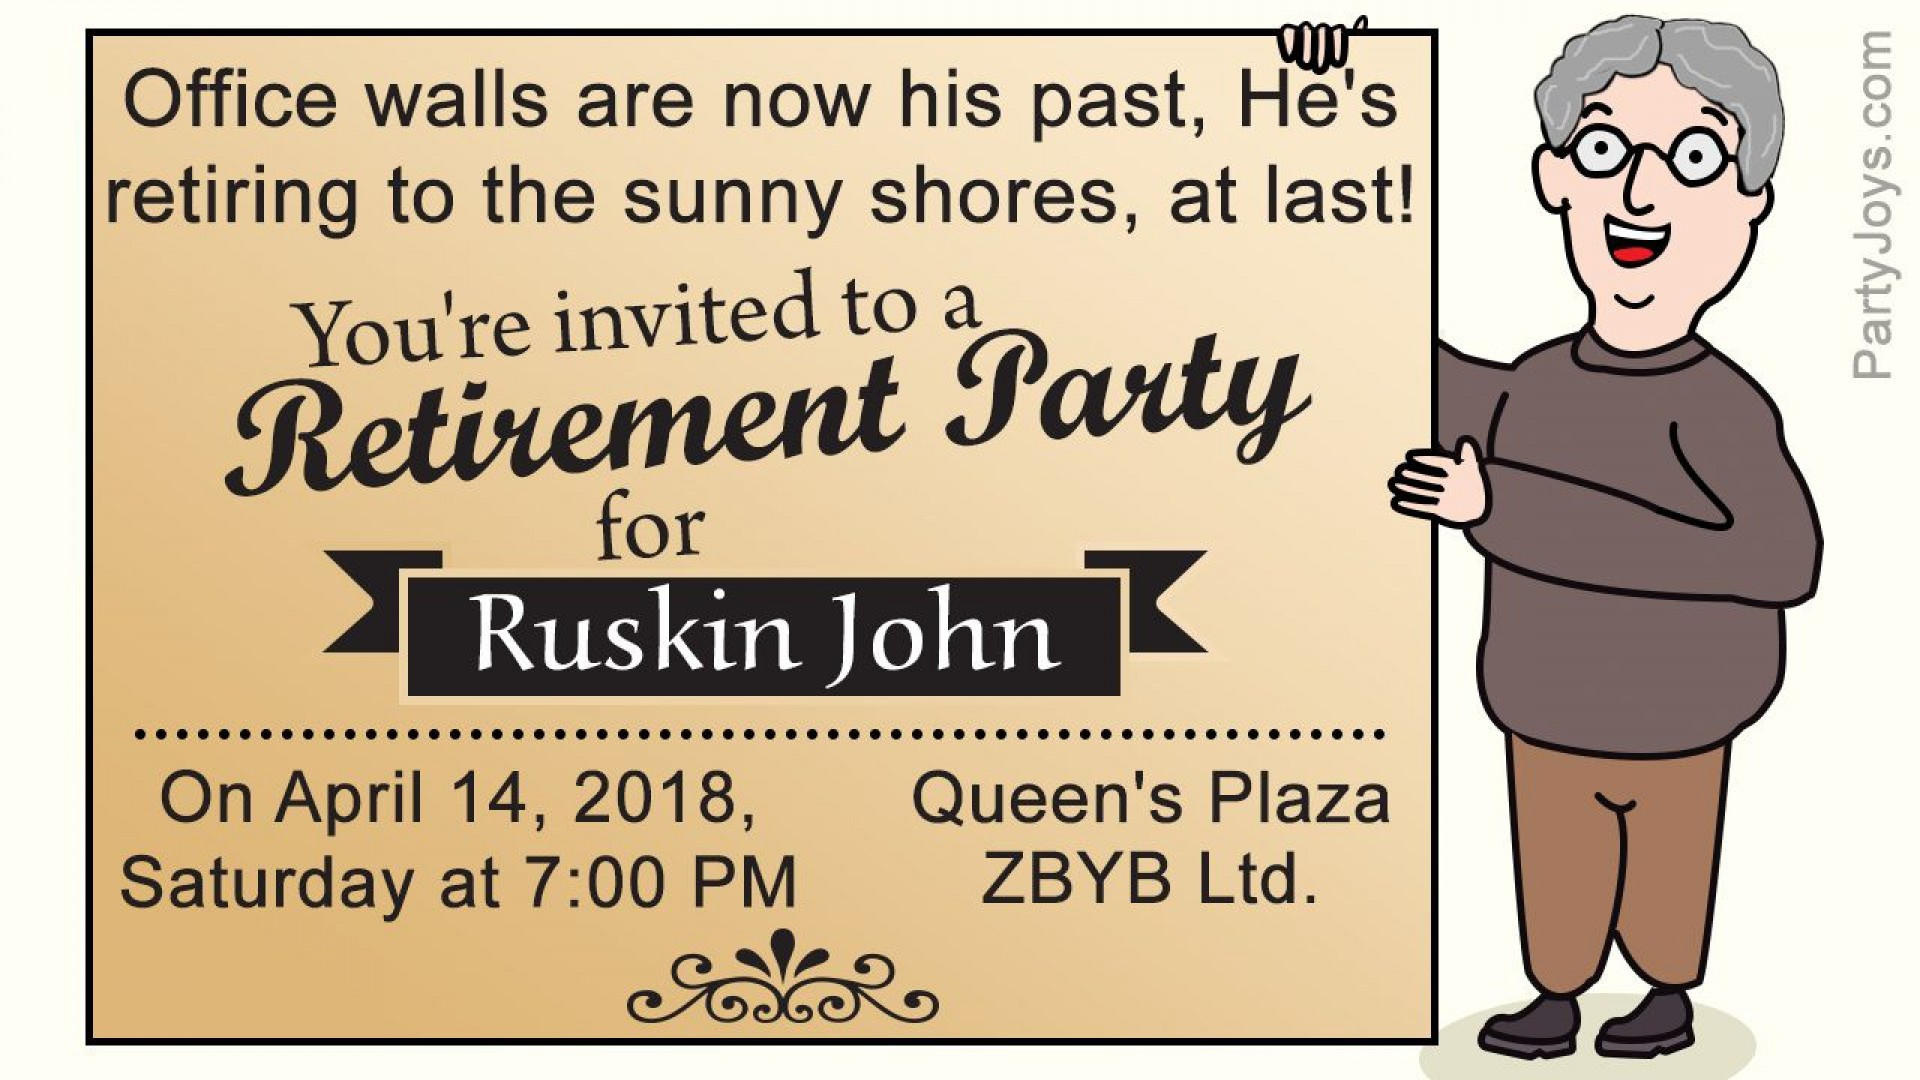 003 Dreaded Retirement Party Invite Template Highest Quality  Invitation Online M Word Free1920